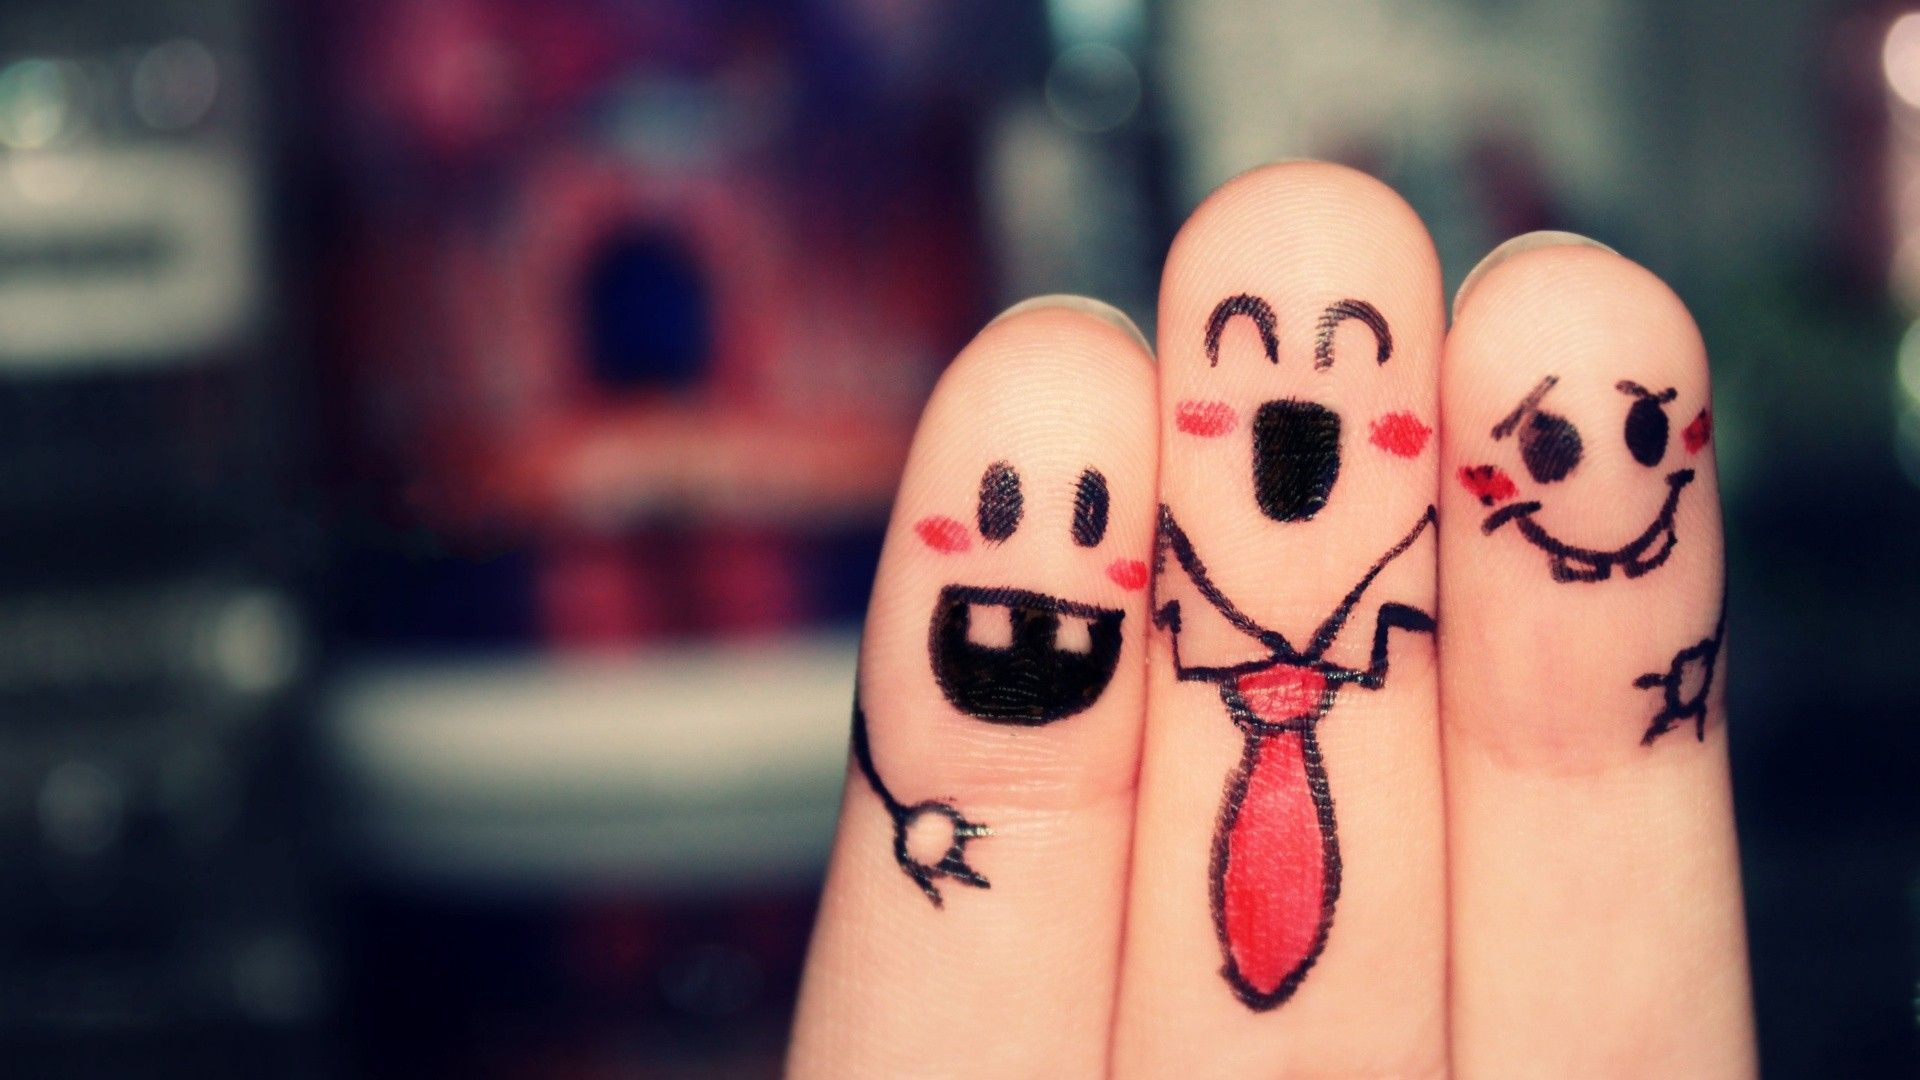 Good Wallpaper Friendship Finger - 1eef8f525cddf081f2a00025983948c9  Perfect Image Reference_23488 .jpg